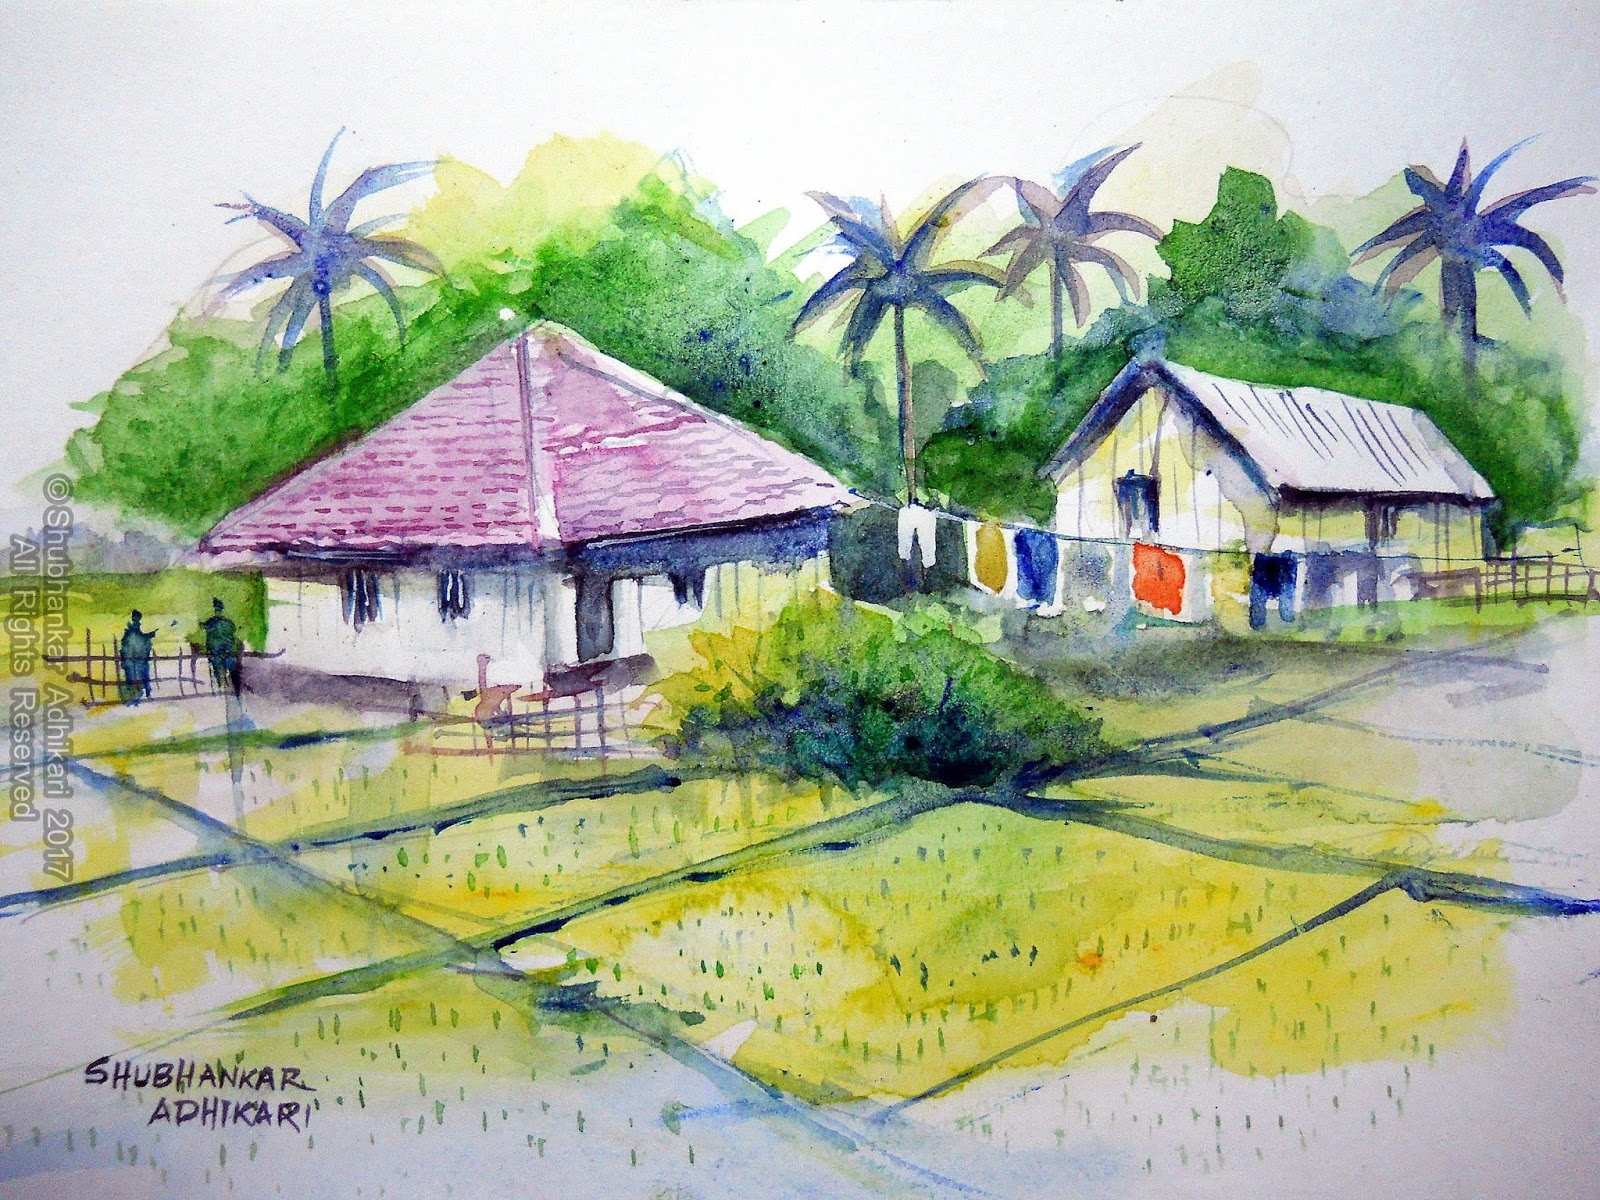 Indian Village Scenes Are Always My Favourite Subject Tp Paint Here In This Work I Have Painted A Scene Of Late Afternoon The Huts